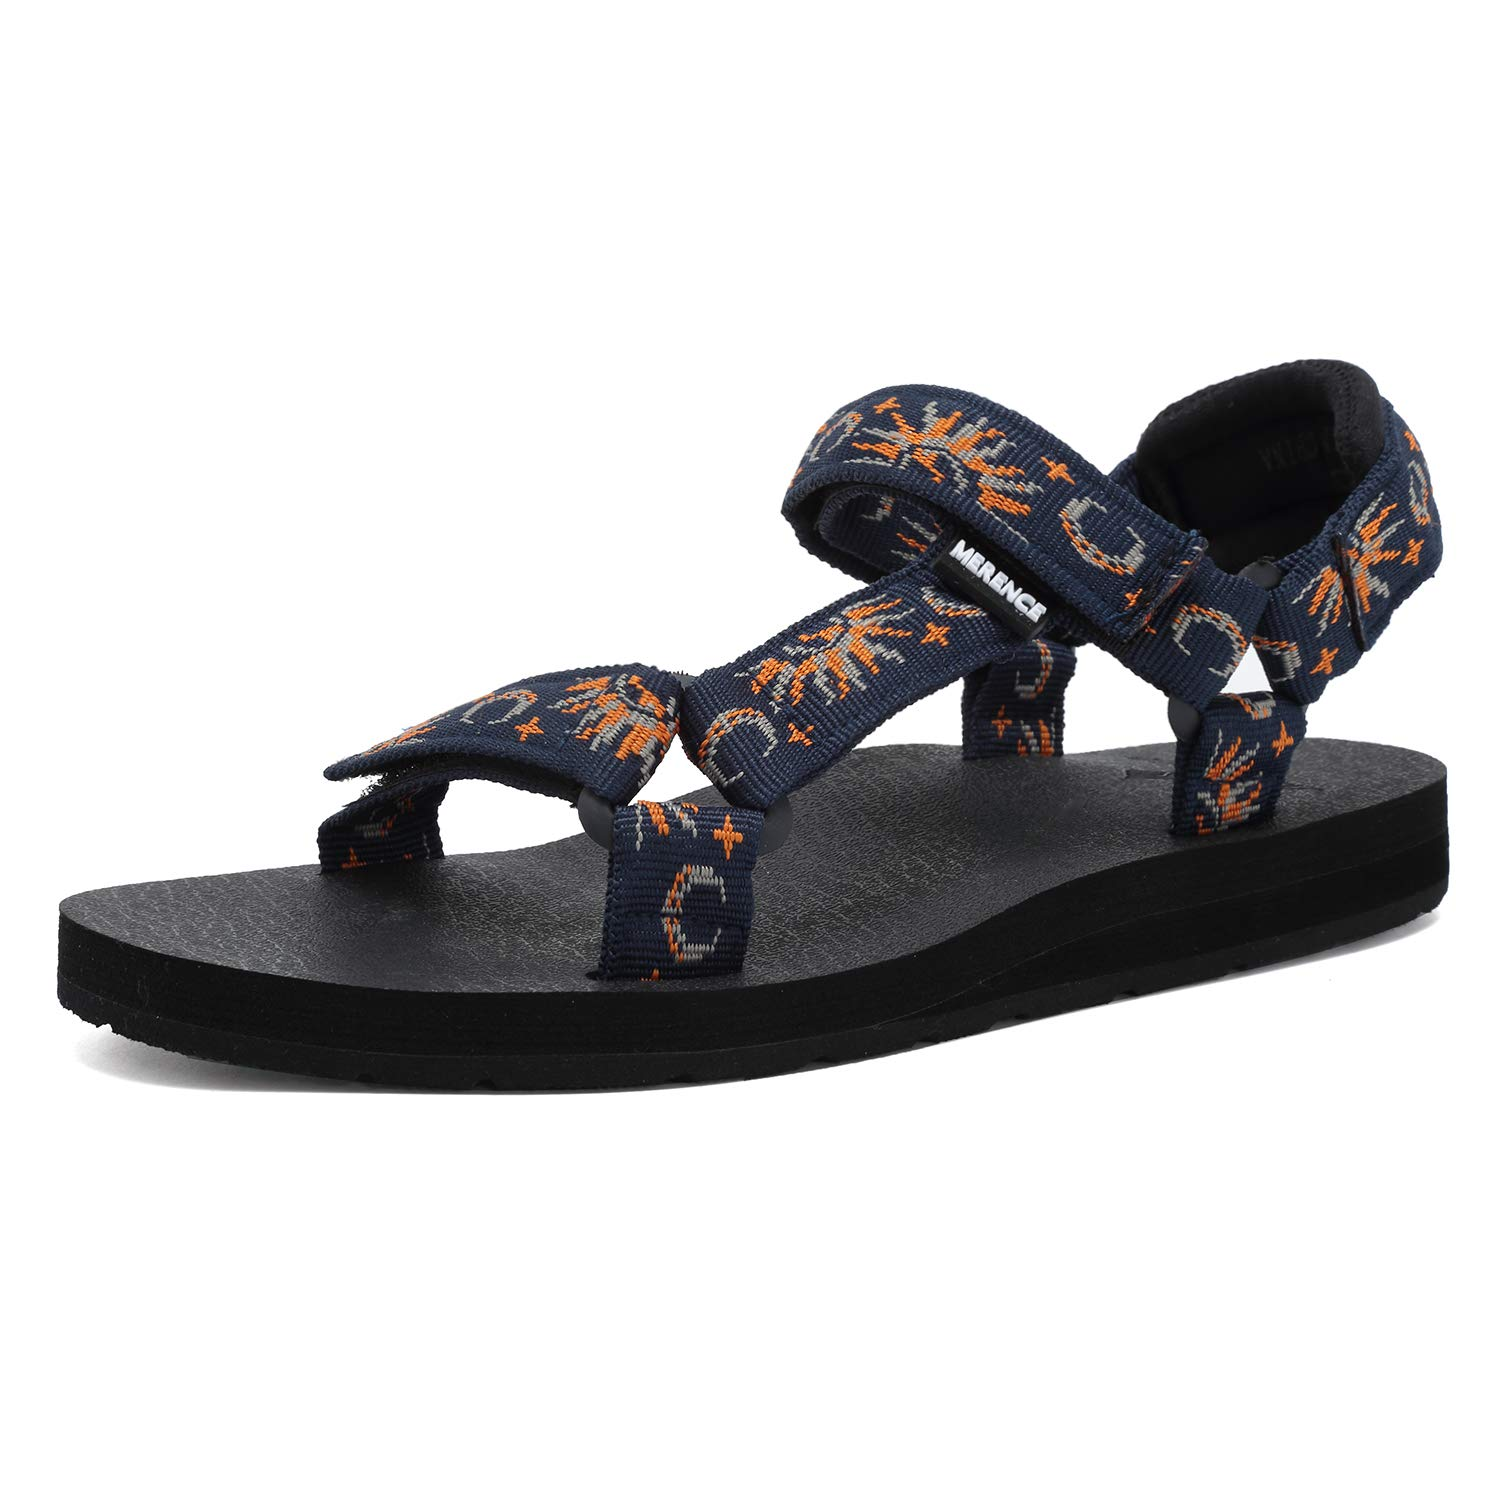 3d07f21da6ff56 Amazon.com | CIOR Women's Sport Sandals Hiking Sandals with Arch Support  Yoga Mat Insole Outdoor Light Weight Water Shoes | Flats